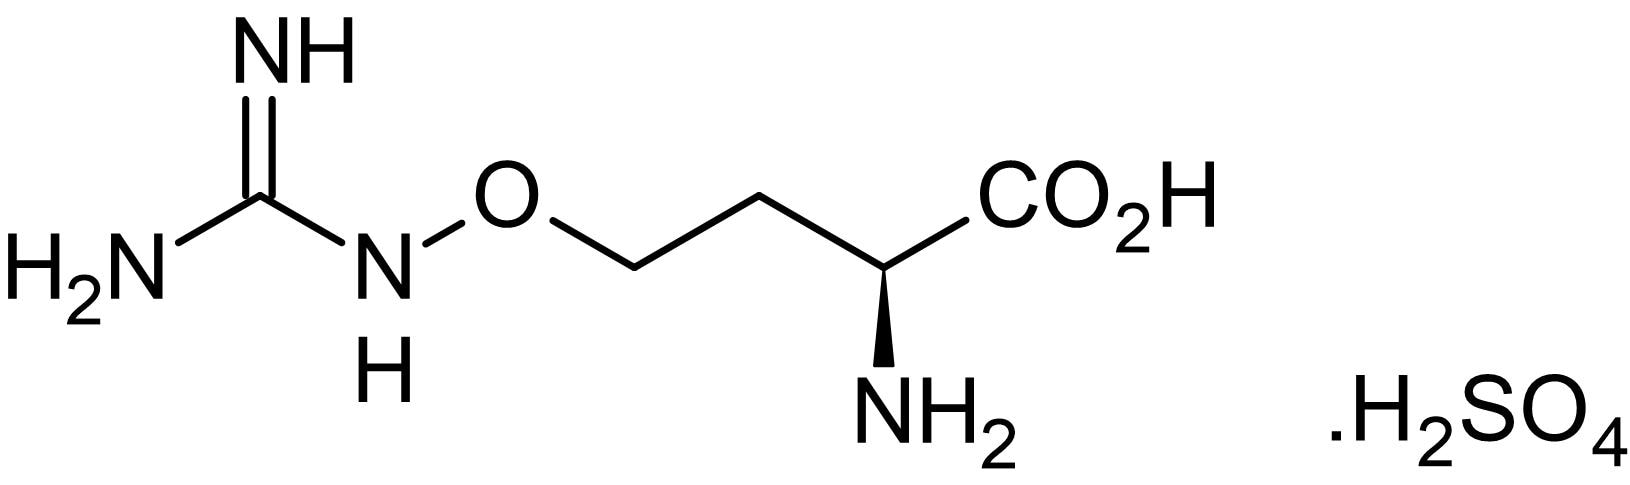 Chemical Structure - L-Canavanine sulfate, iNOS inhibitor (ab144723)